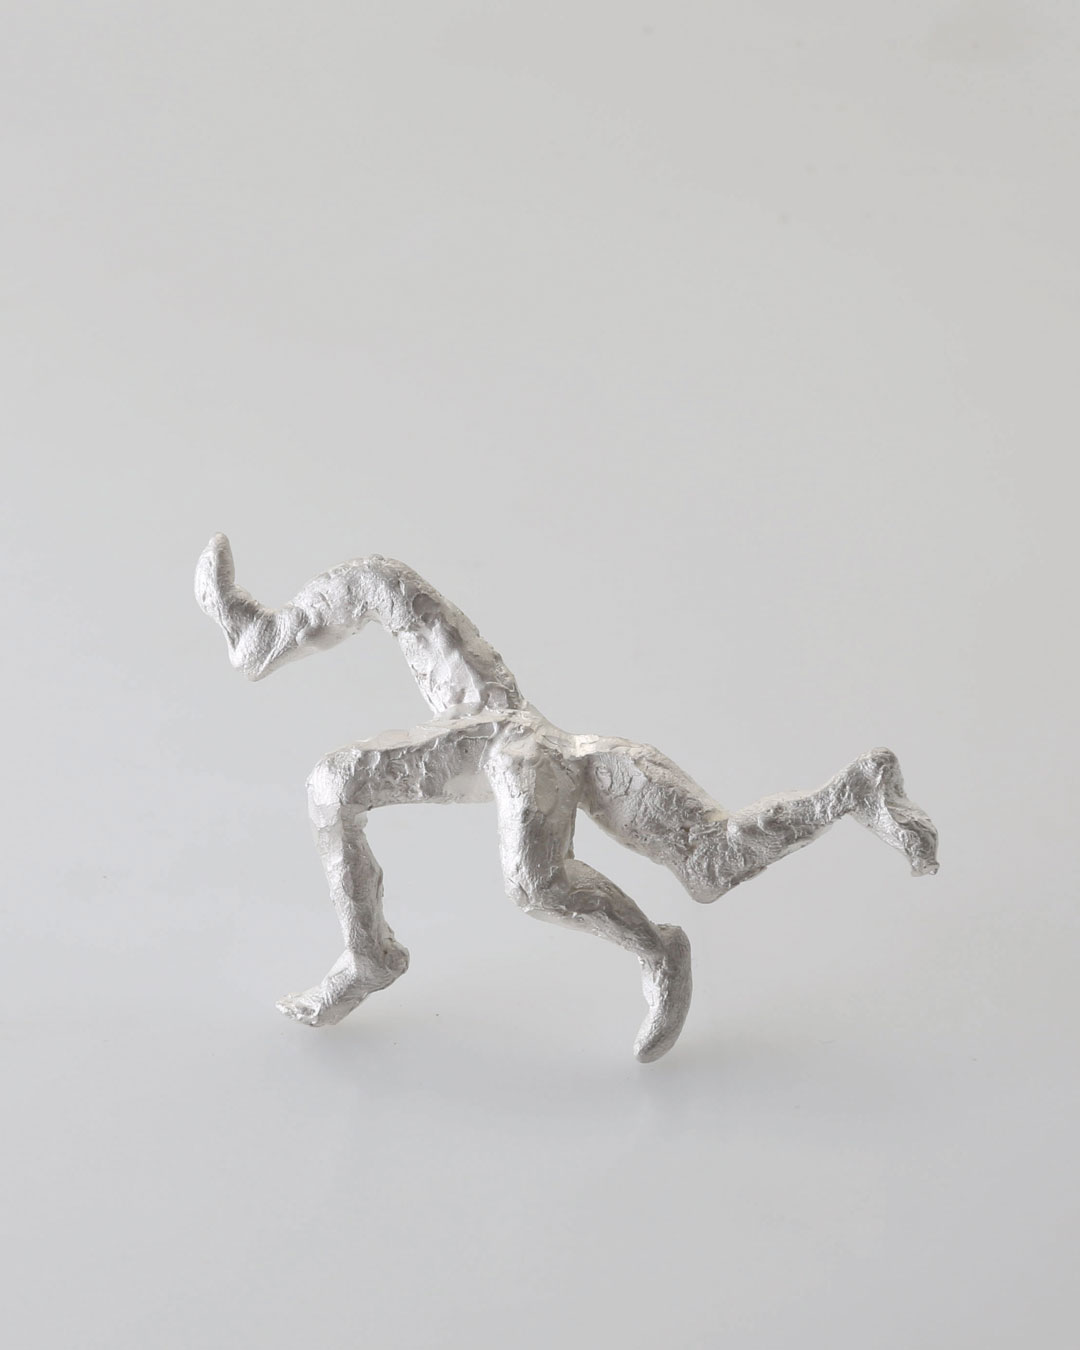 Juliane Brandes, Der Club, 2015, brooch; silver, 75 x 40 mm, €1460